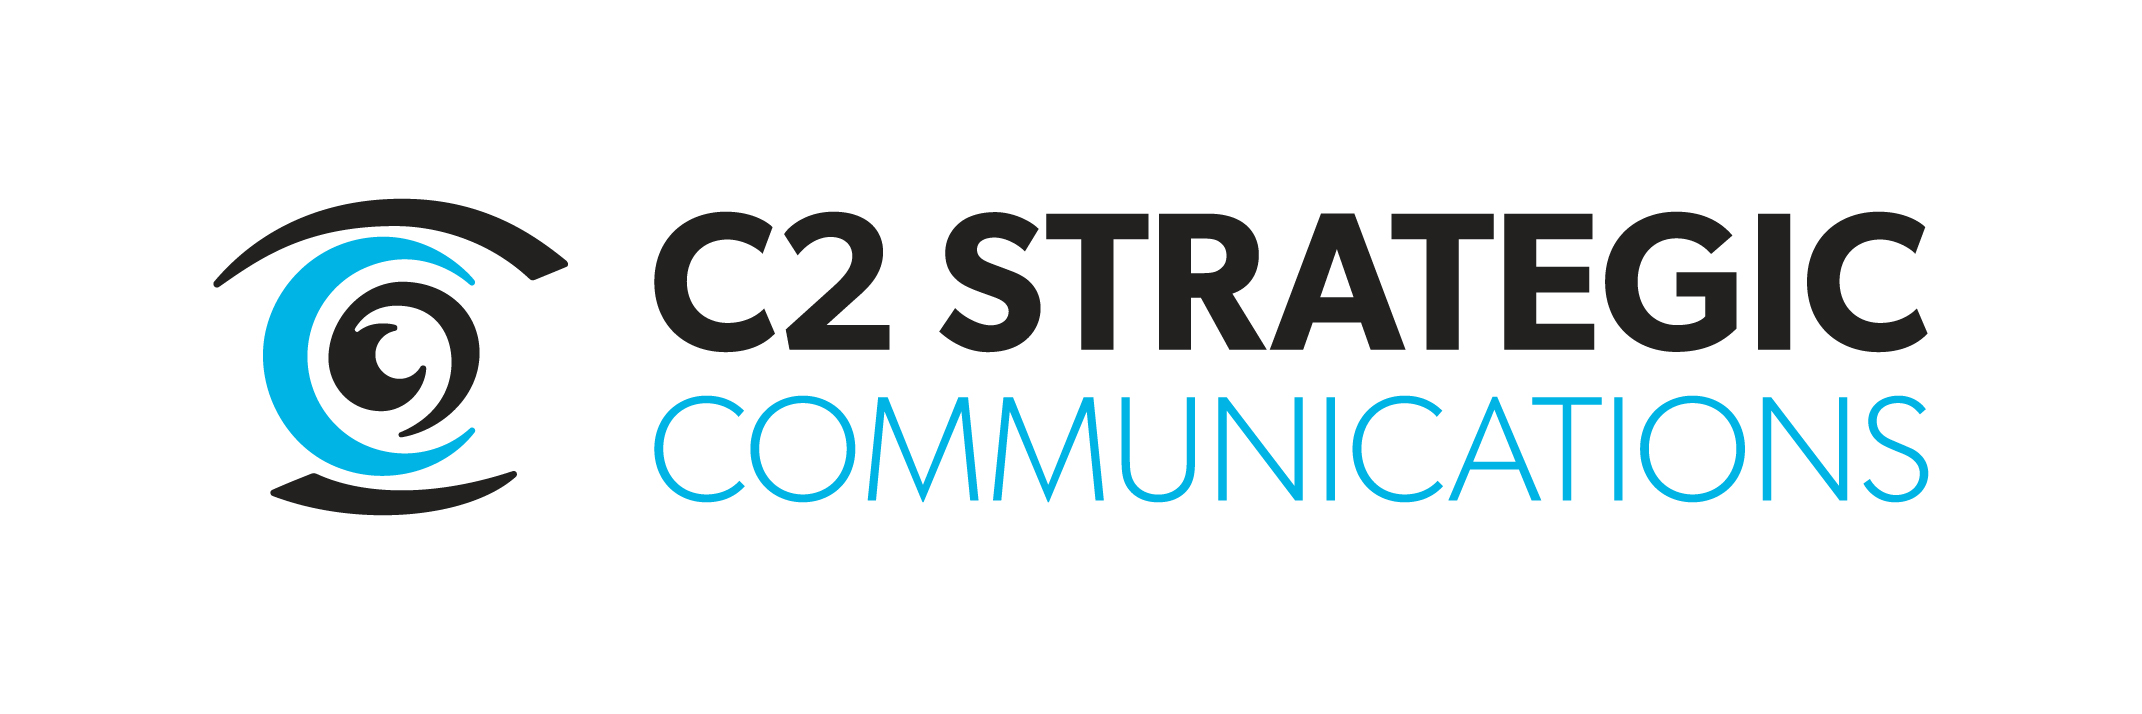 C2 Strategic CommunicationsC2 Strategic Team Grows to a